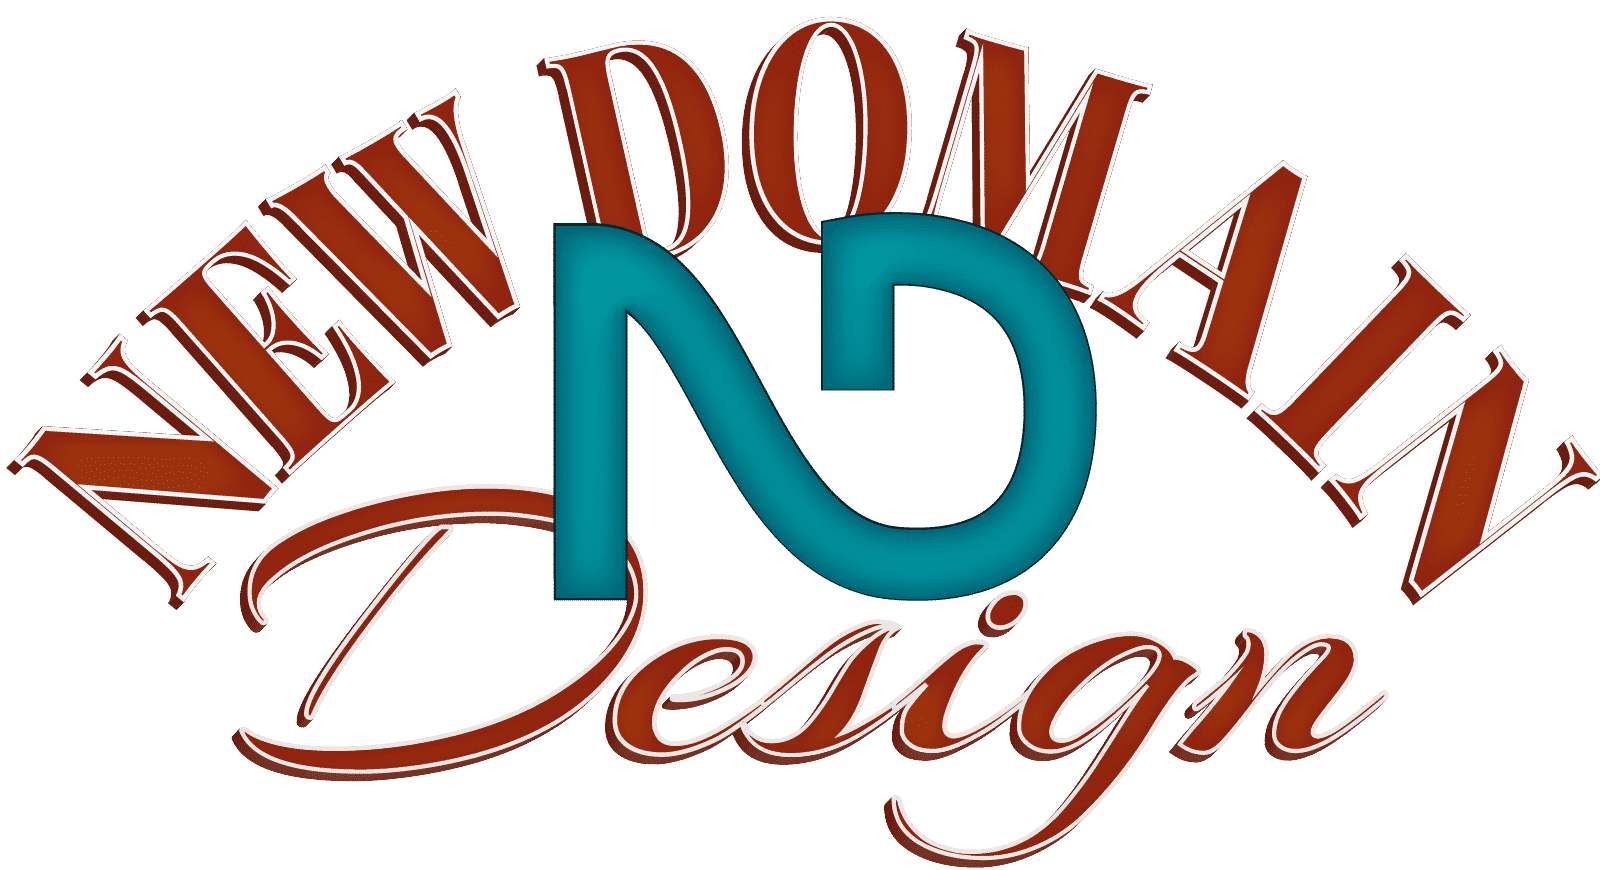 New Domain Design